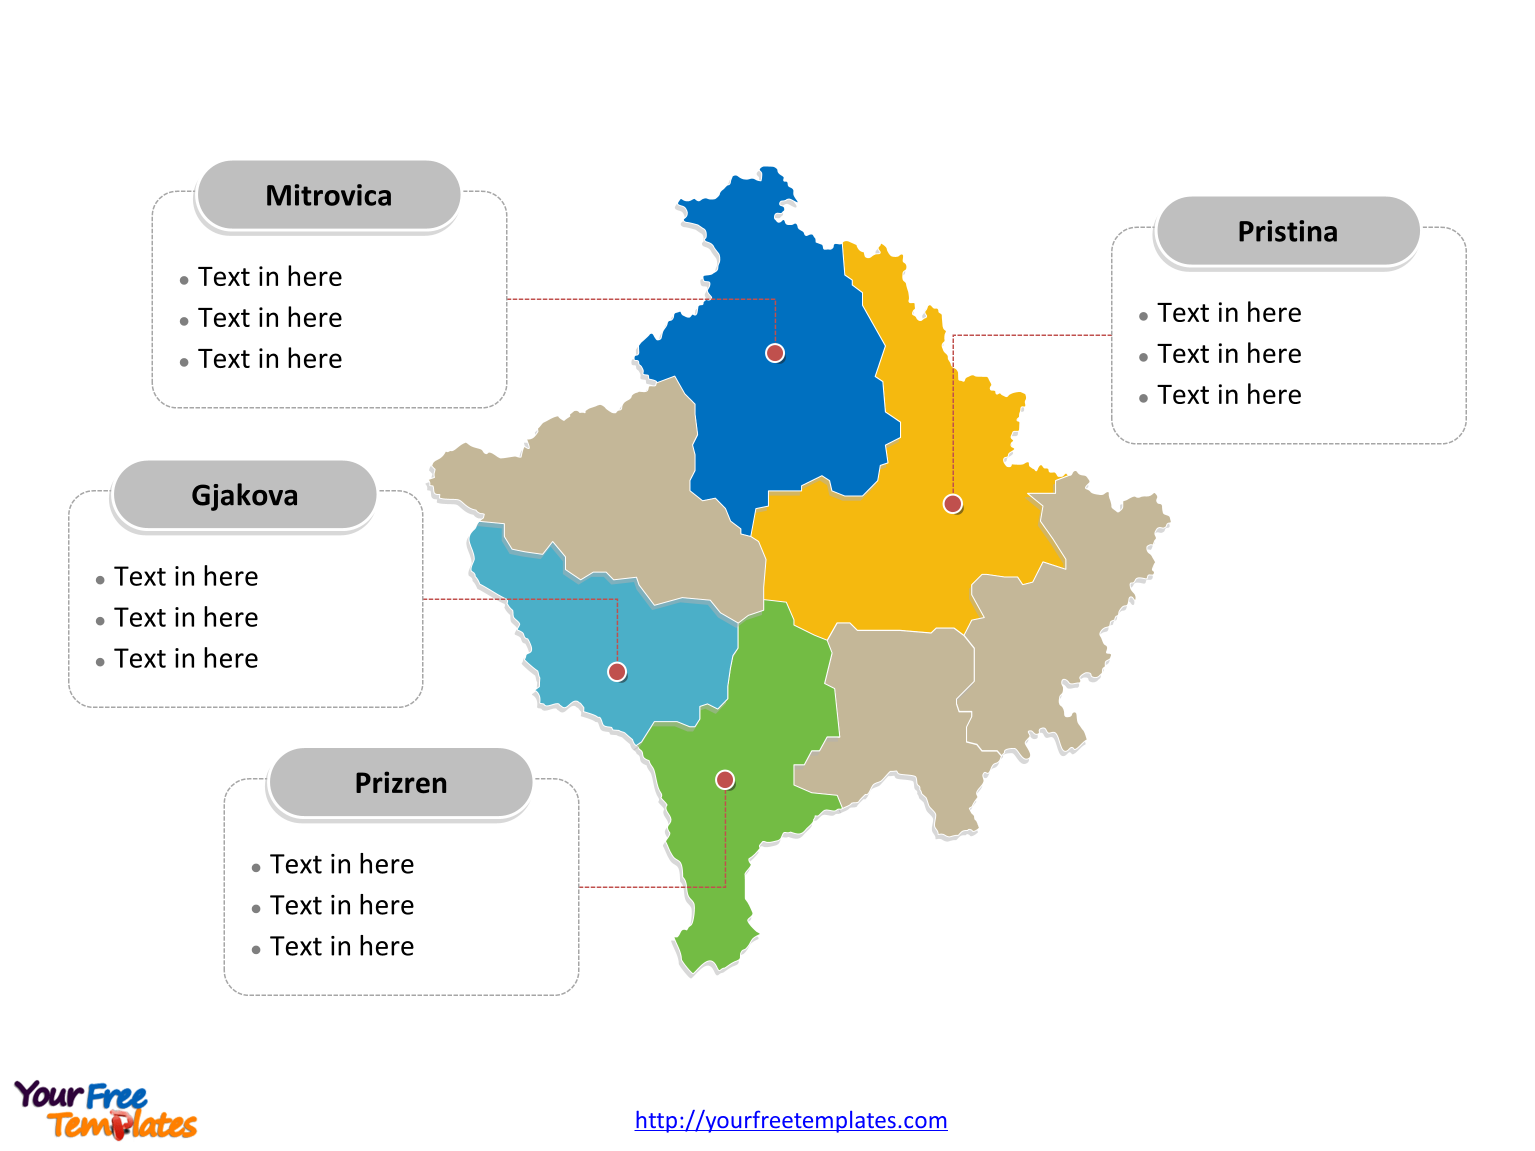 Kosovo Map In World. Kosovo political map labeled with major districts Free Editable Map  PowerPoint Templates